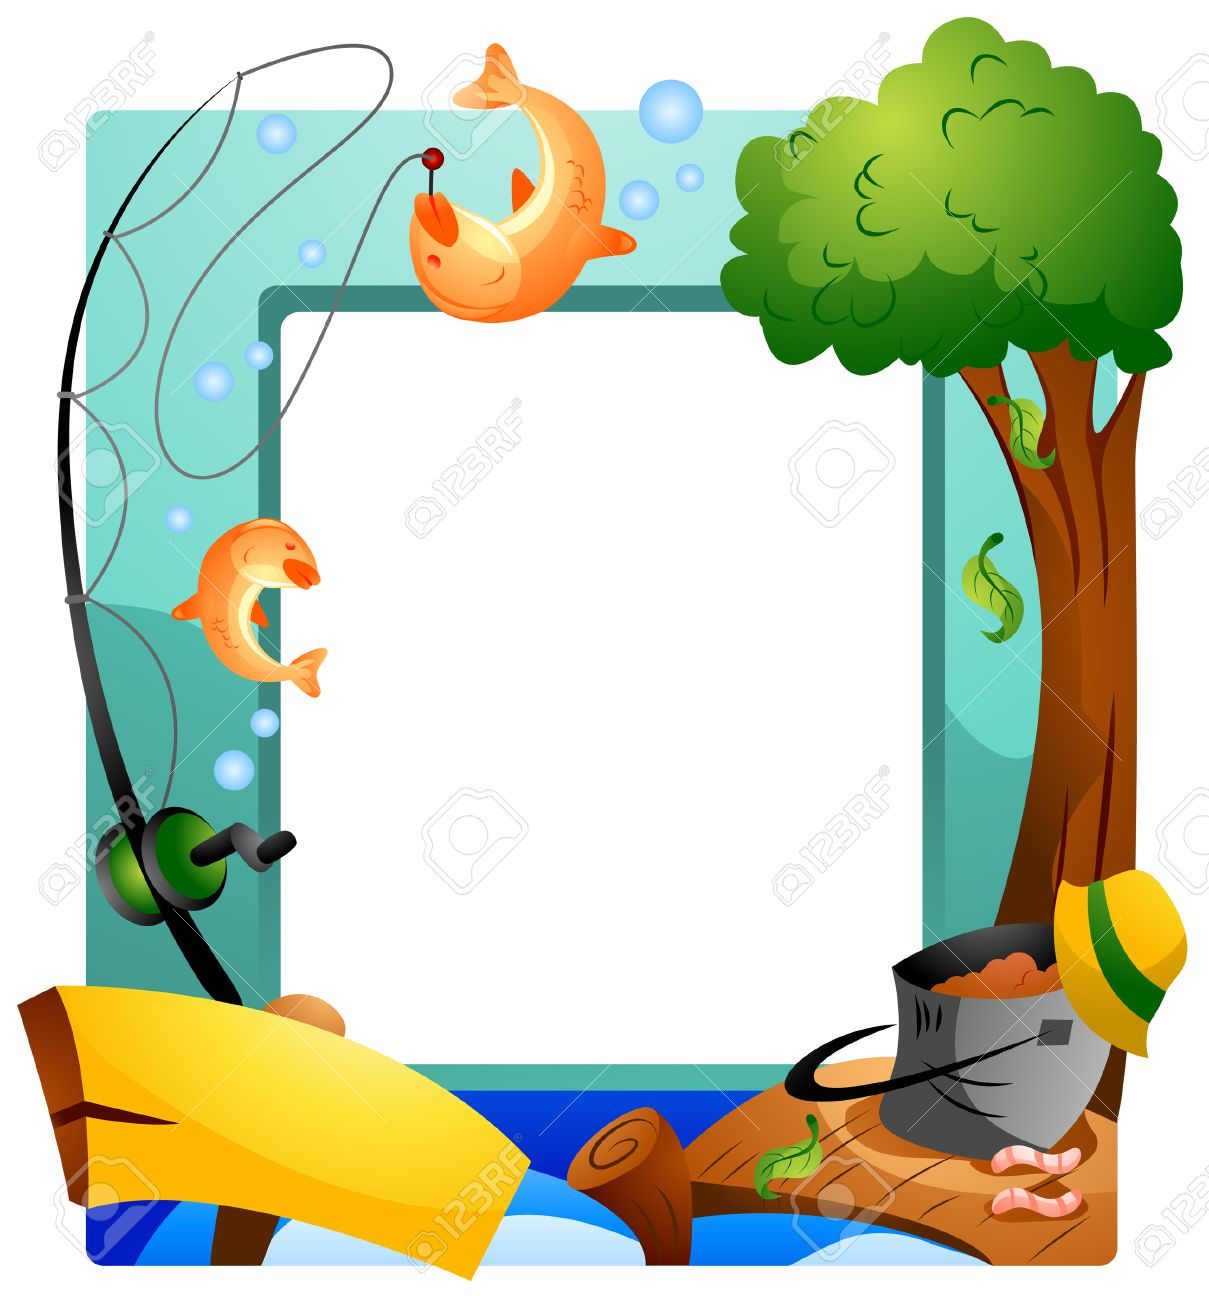 Fishing Frame With Clipping Path Royalty Free Cliparts, Vectors, And ...